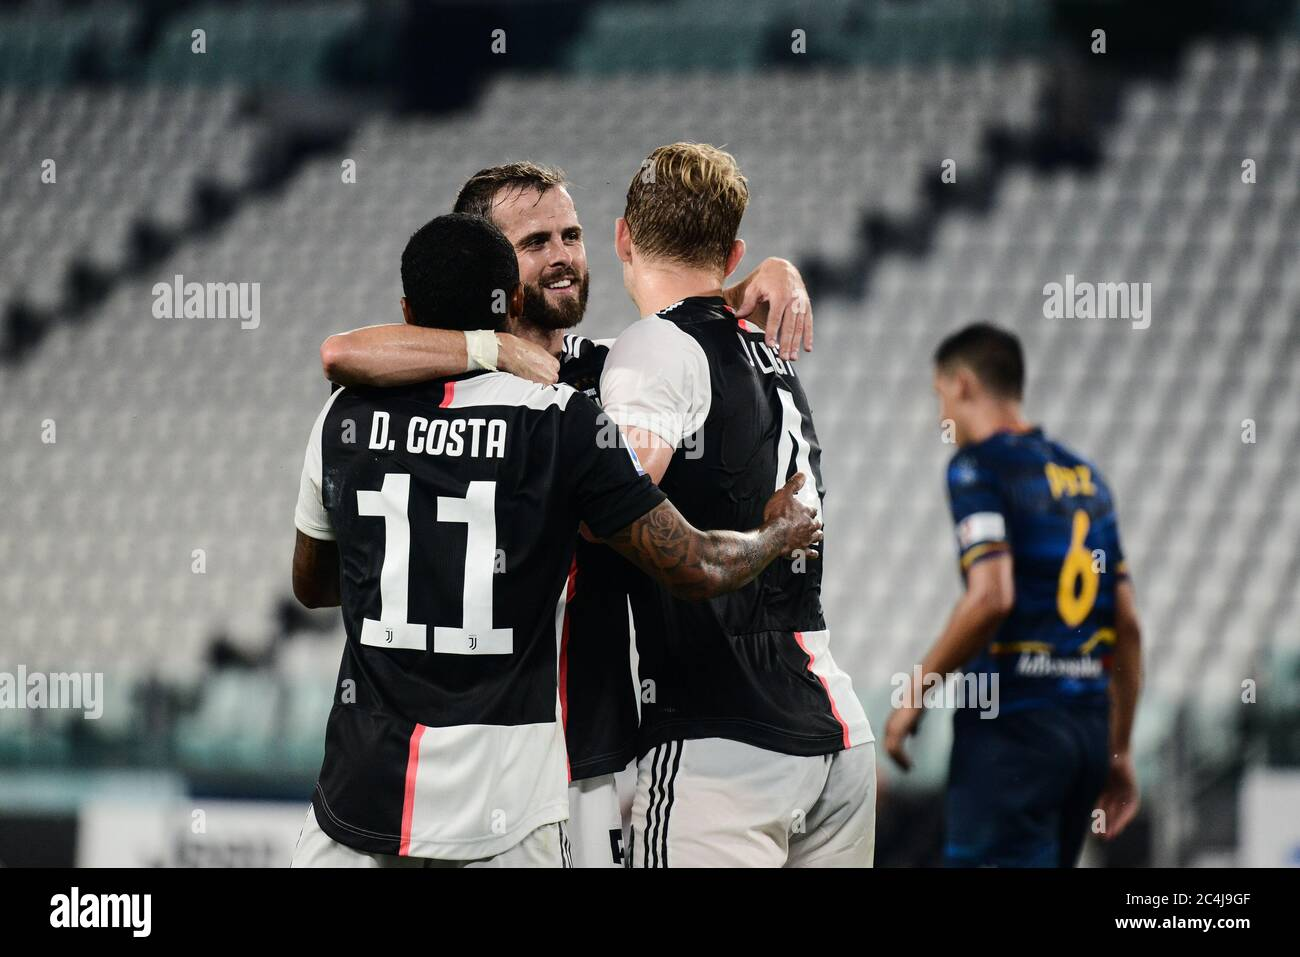 Turin Italy 26th June 2020 Miralem Pjanic And Douglas Costa Of Juventus Celebrates During The The Serie A Football Match Juventus Fc Vs Lecce Juventus Won 4 0 At Allianz Stadium In Turin